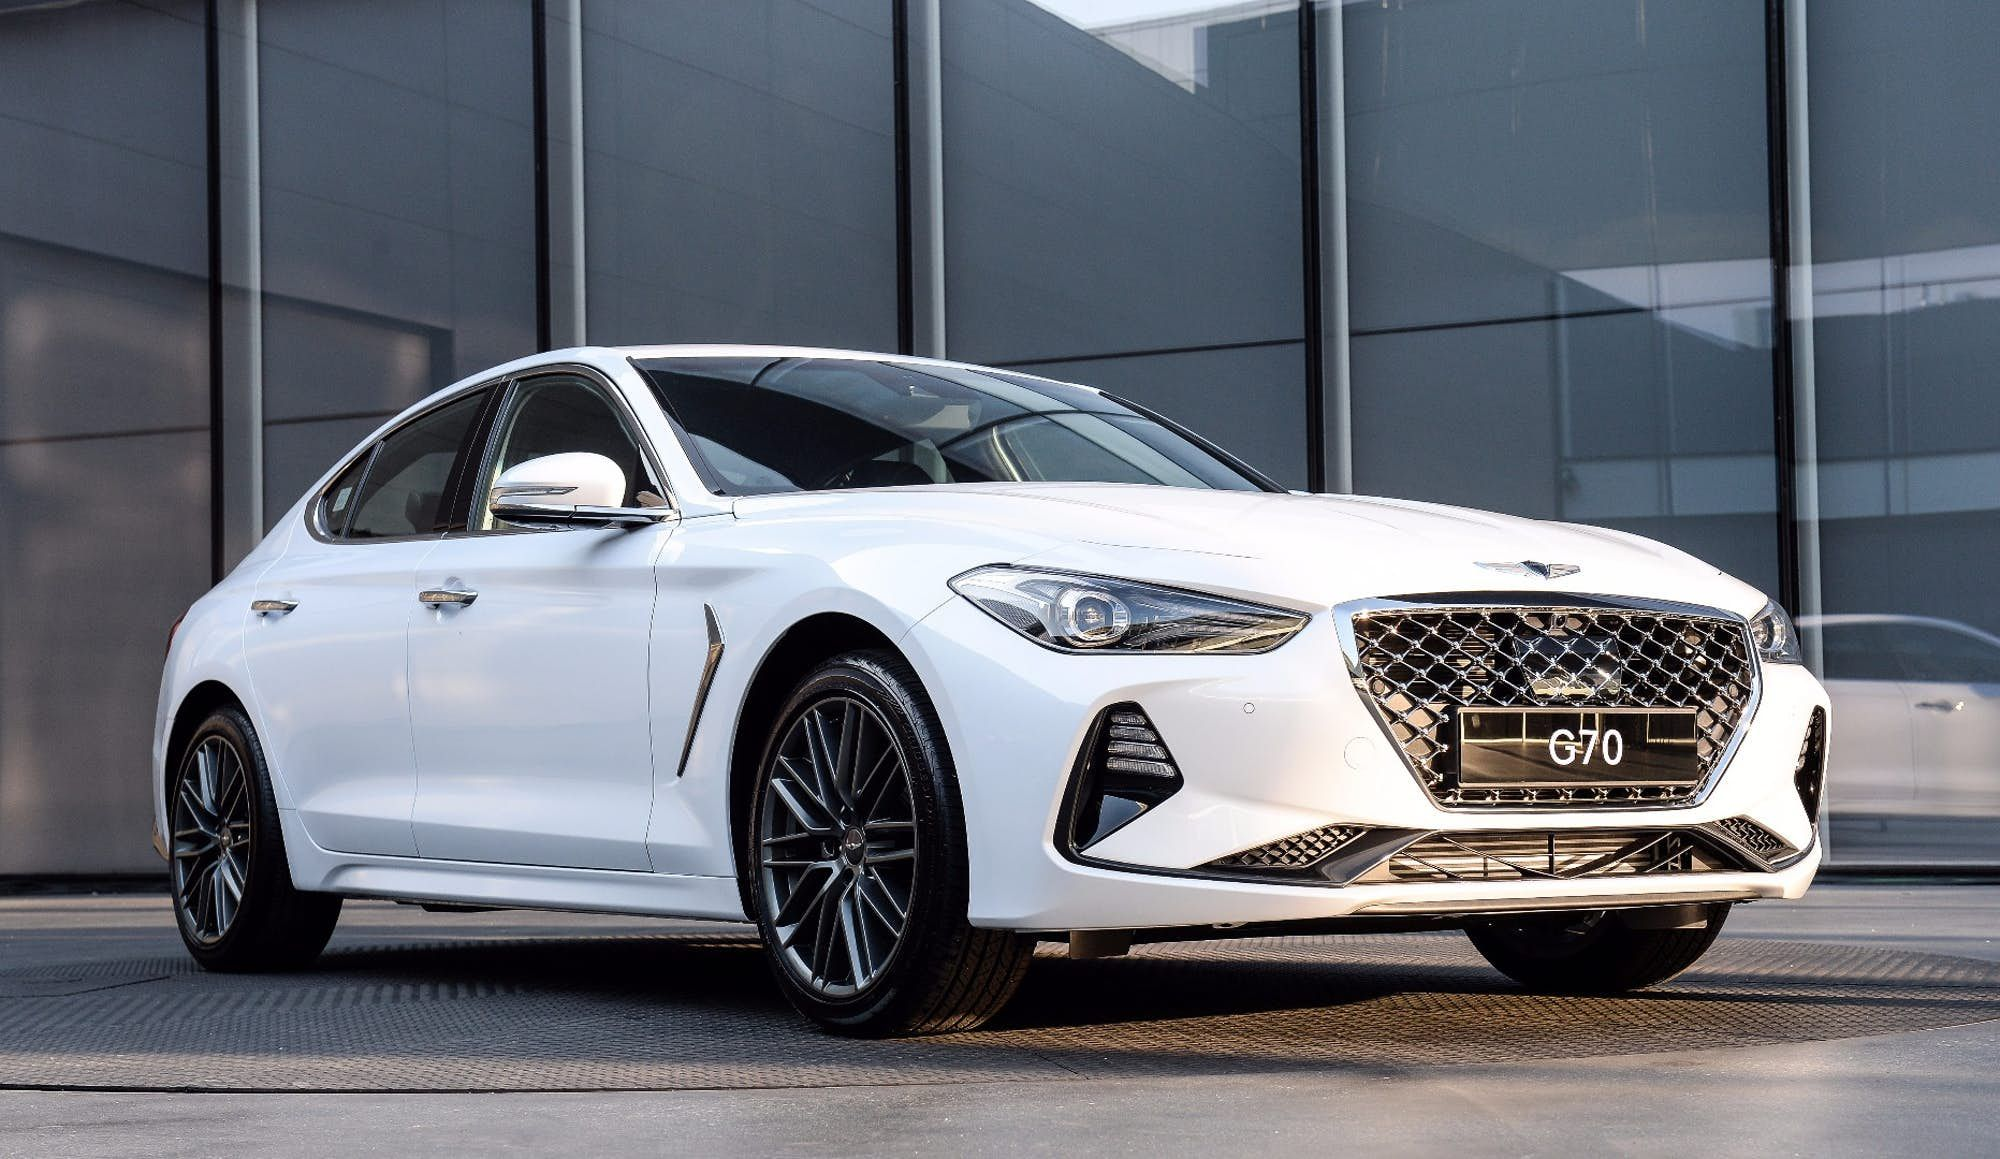 Hyundai puts luxury spin on the Stinger with Genesis G70